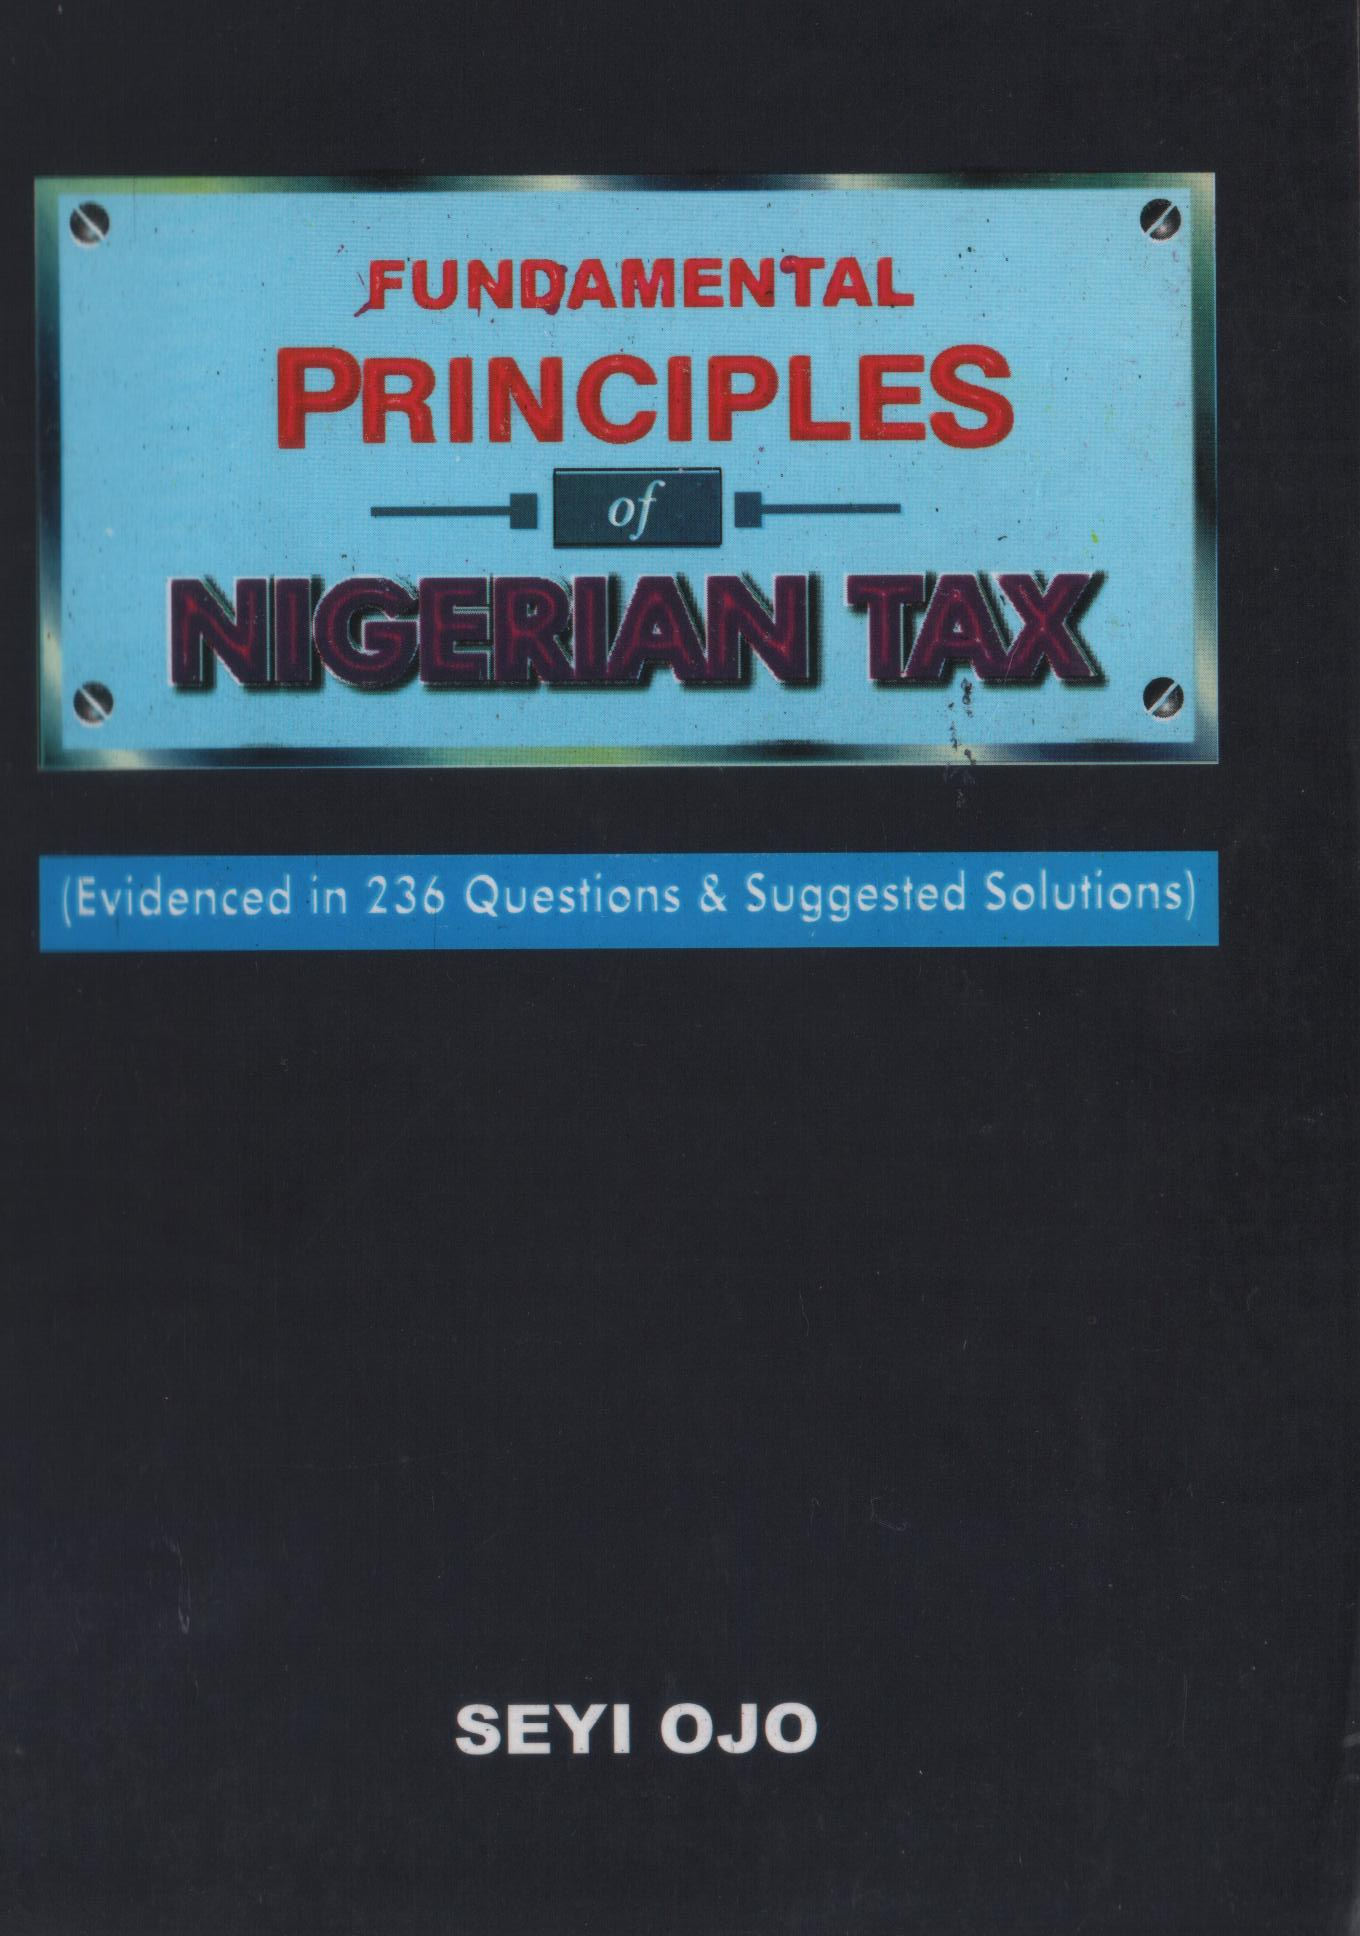 FUNDAMENTAL PRINCIPLES OF NIGERIA TAX (2nd Edition)